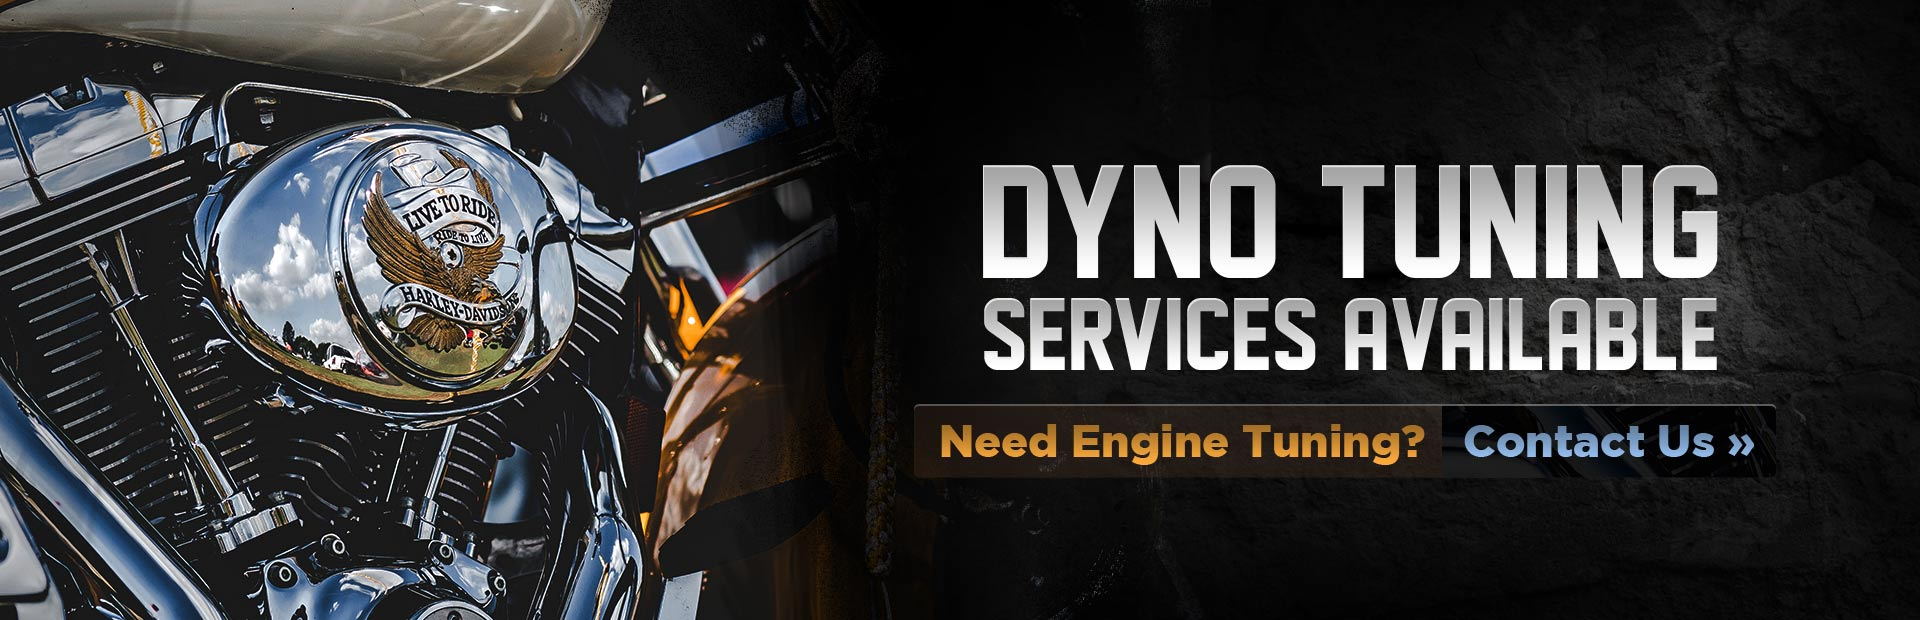 Dyno Tuning Services Available: Need engine tuning? Contact us!